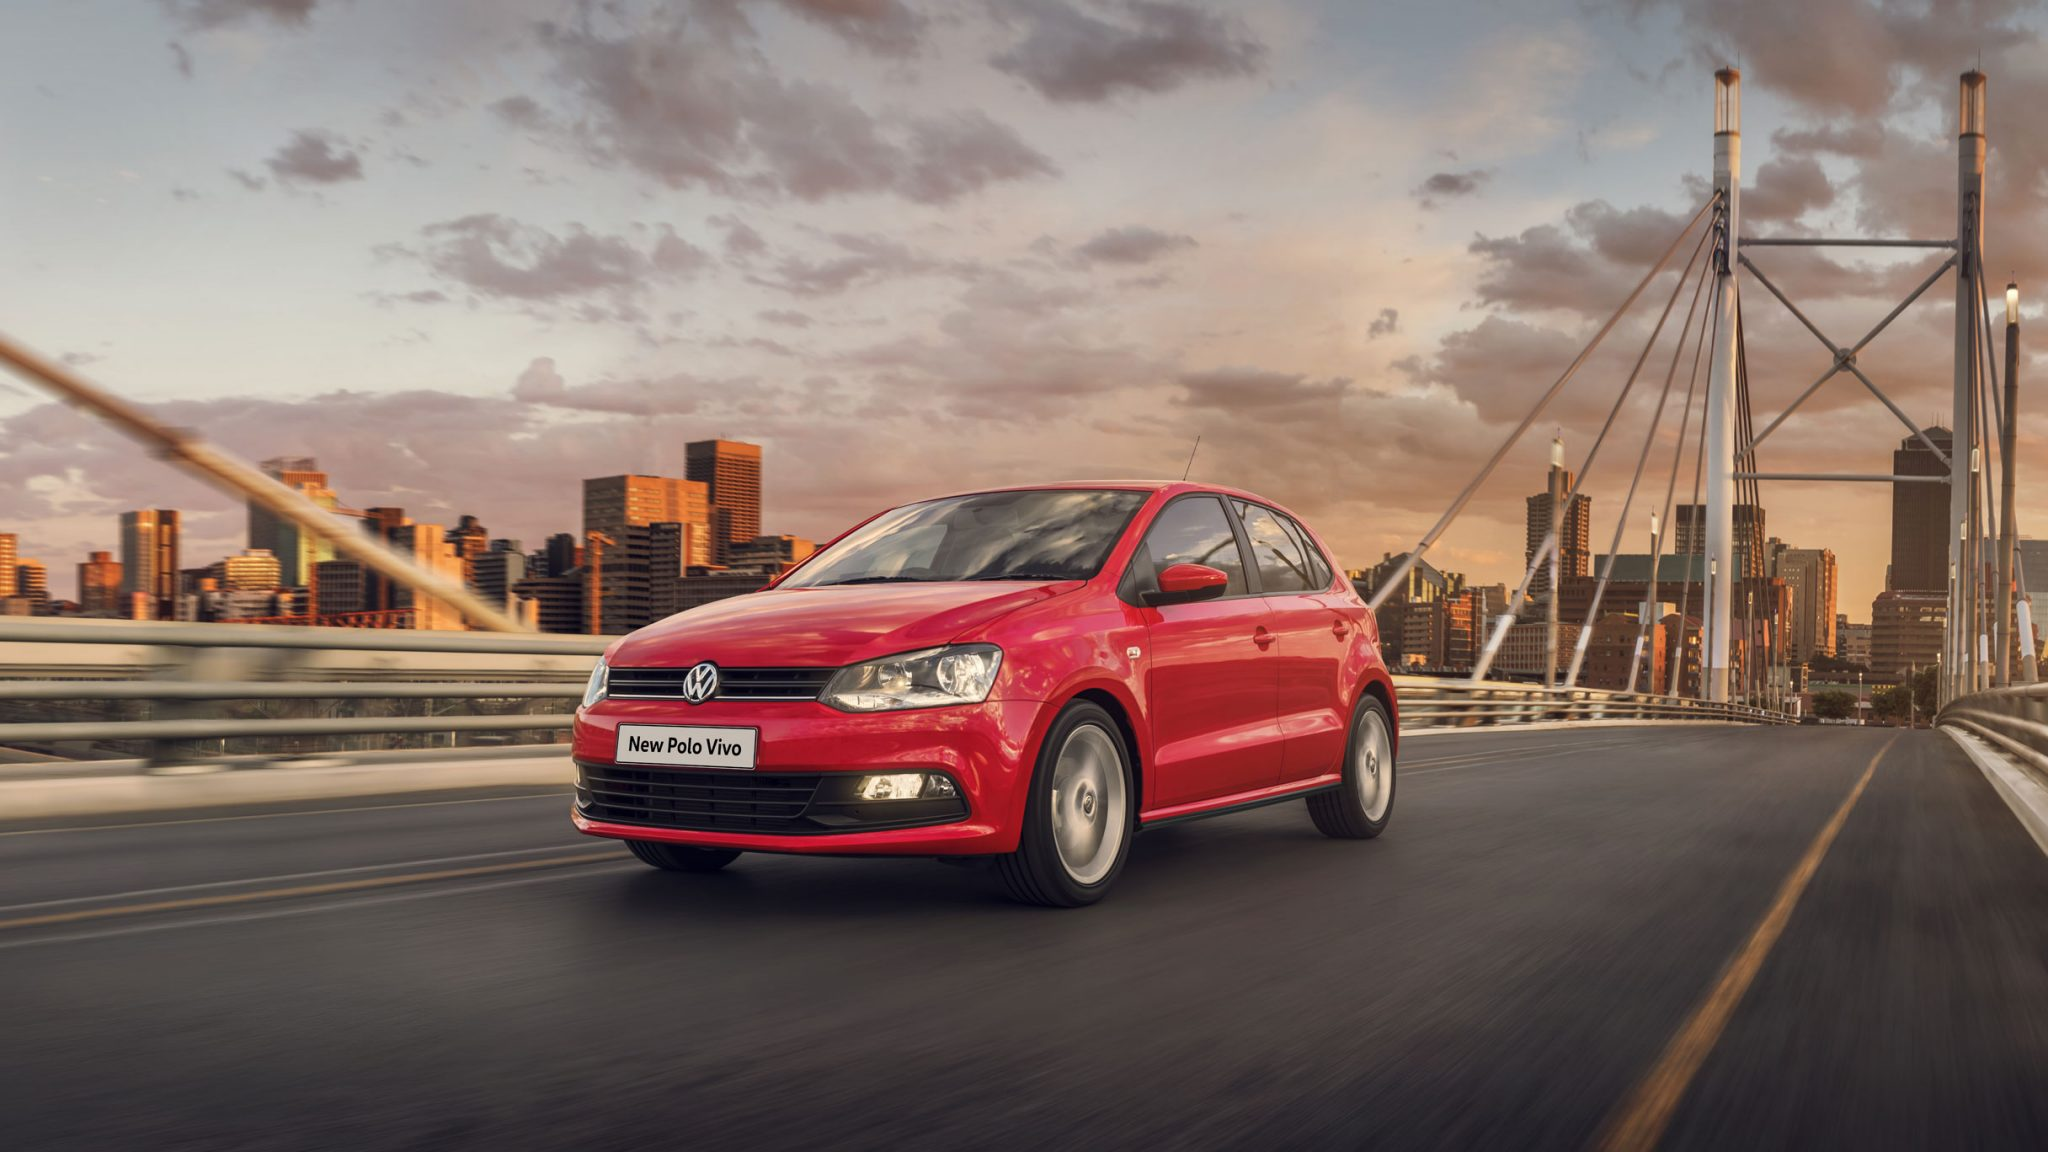 Volkswagen Polo Vivo specs and prices